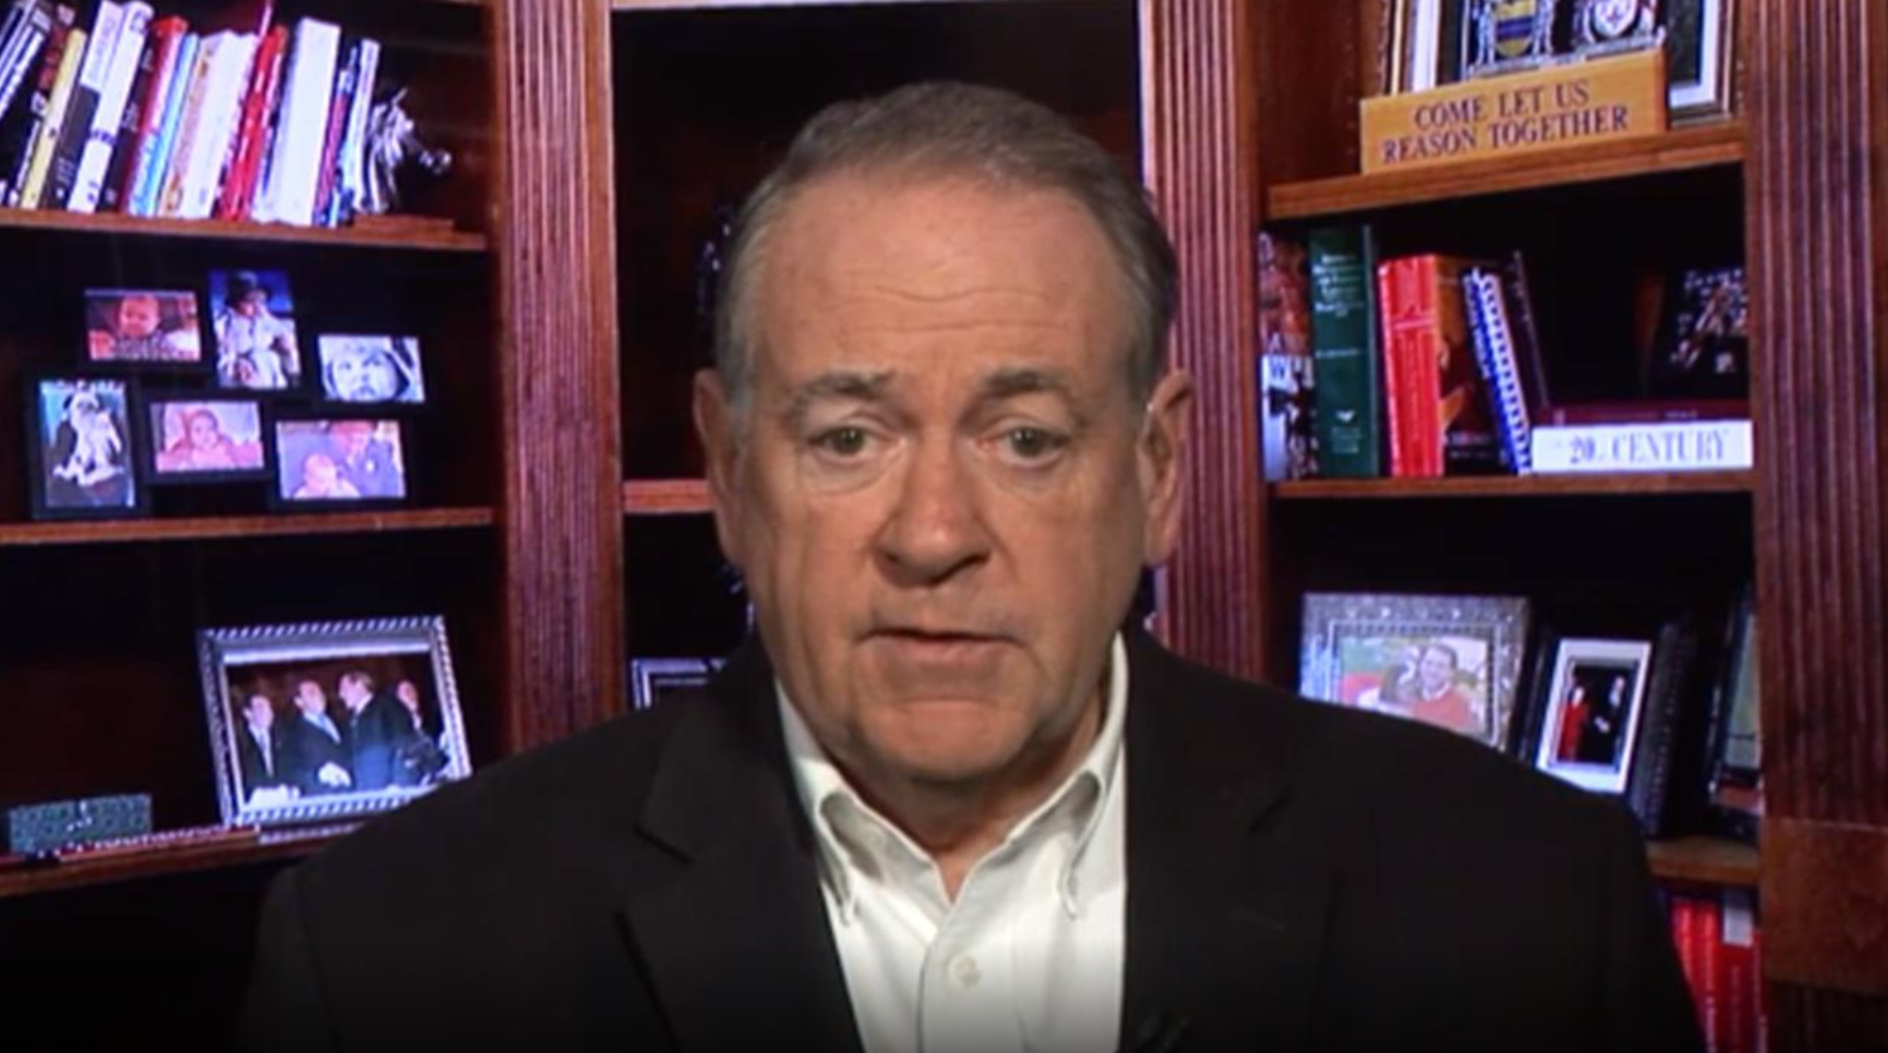 'Show him the tape': Huckabee blasts Swalwell for claiming Biden allegations are 'conspiracy theories'